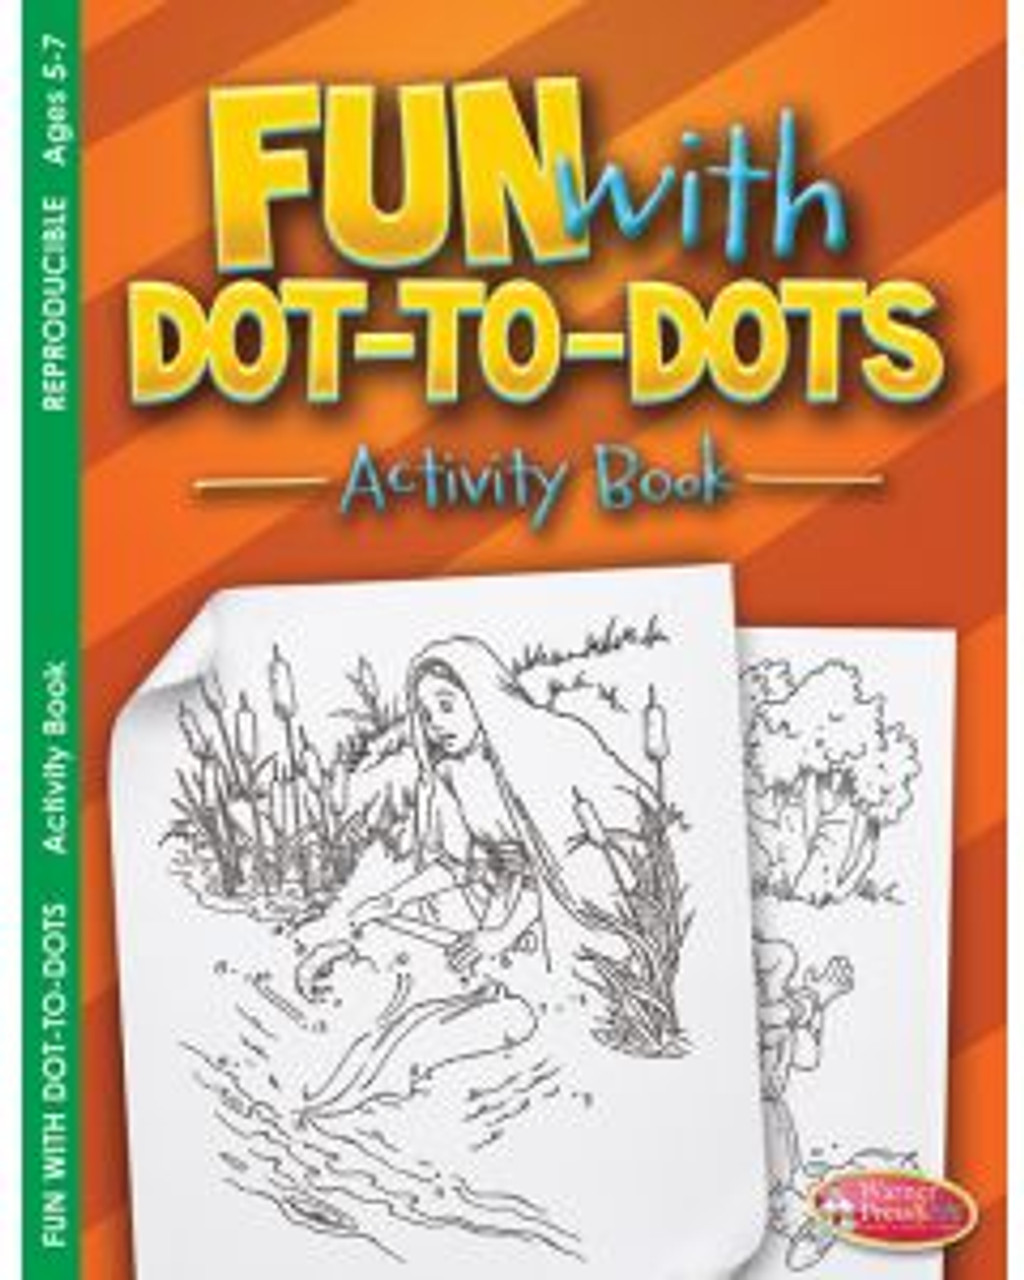 Fun With Dot-to-Dots (activity book)